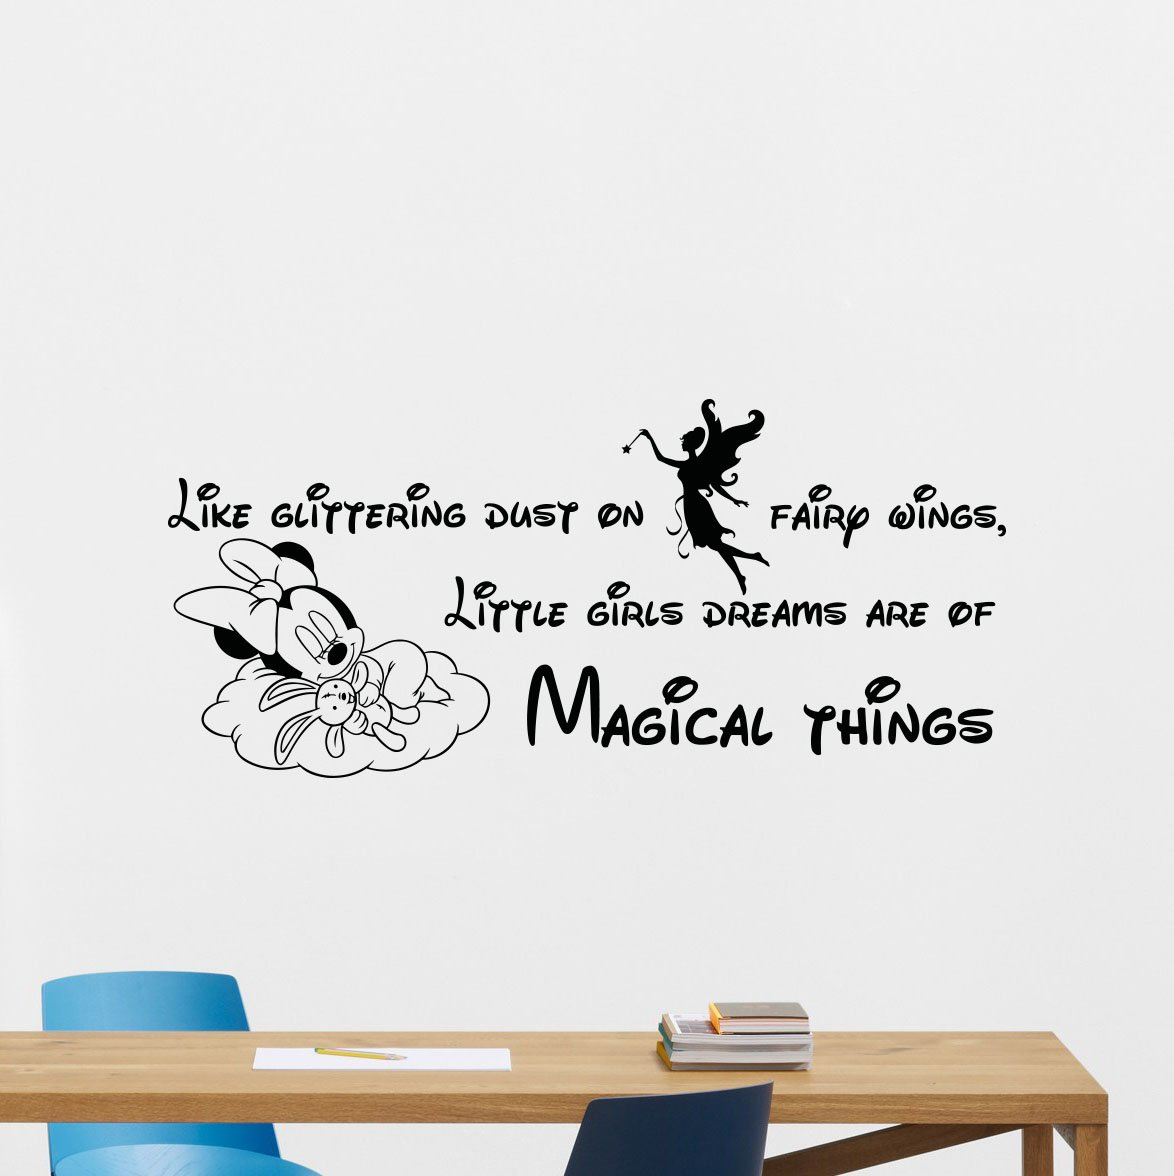 Amazon.com: Wall Decal Quote Like Glittering Dust On Fairy Wings Little  Girls Dreams Are Of Magical Things Girl Kids Fairy Minnie Mouse Cartoons  Vinyl ... Part 98